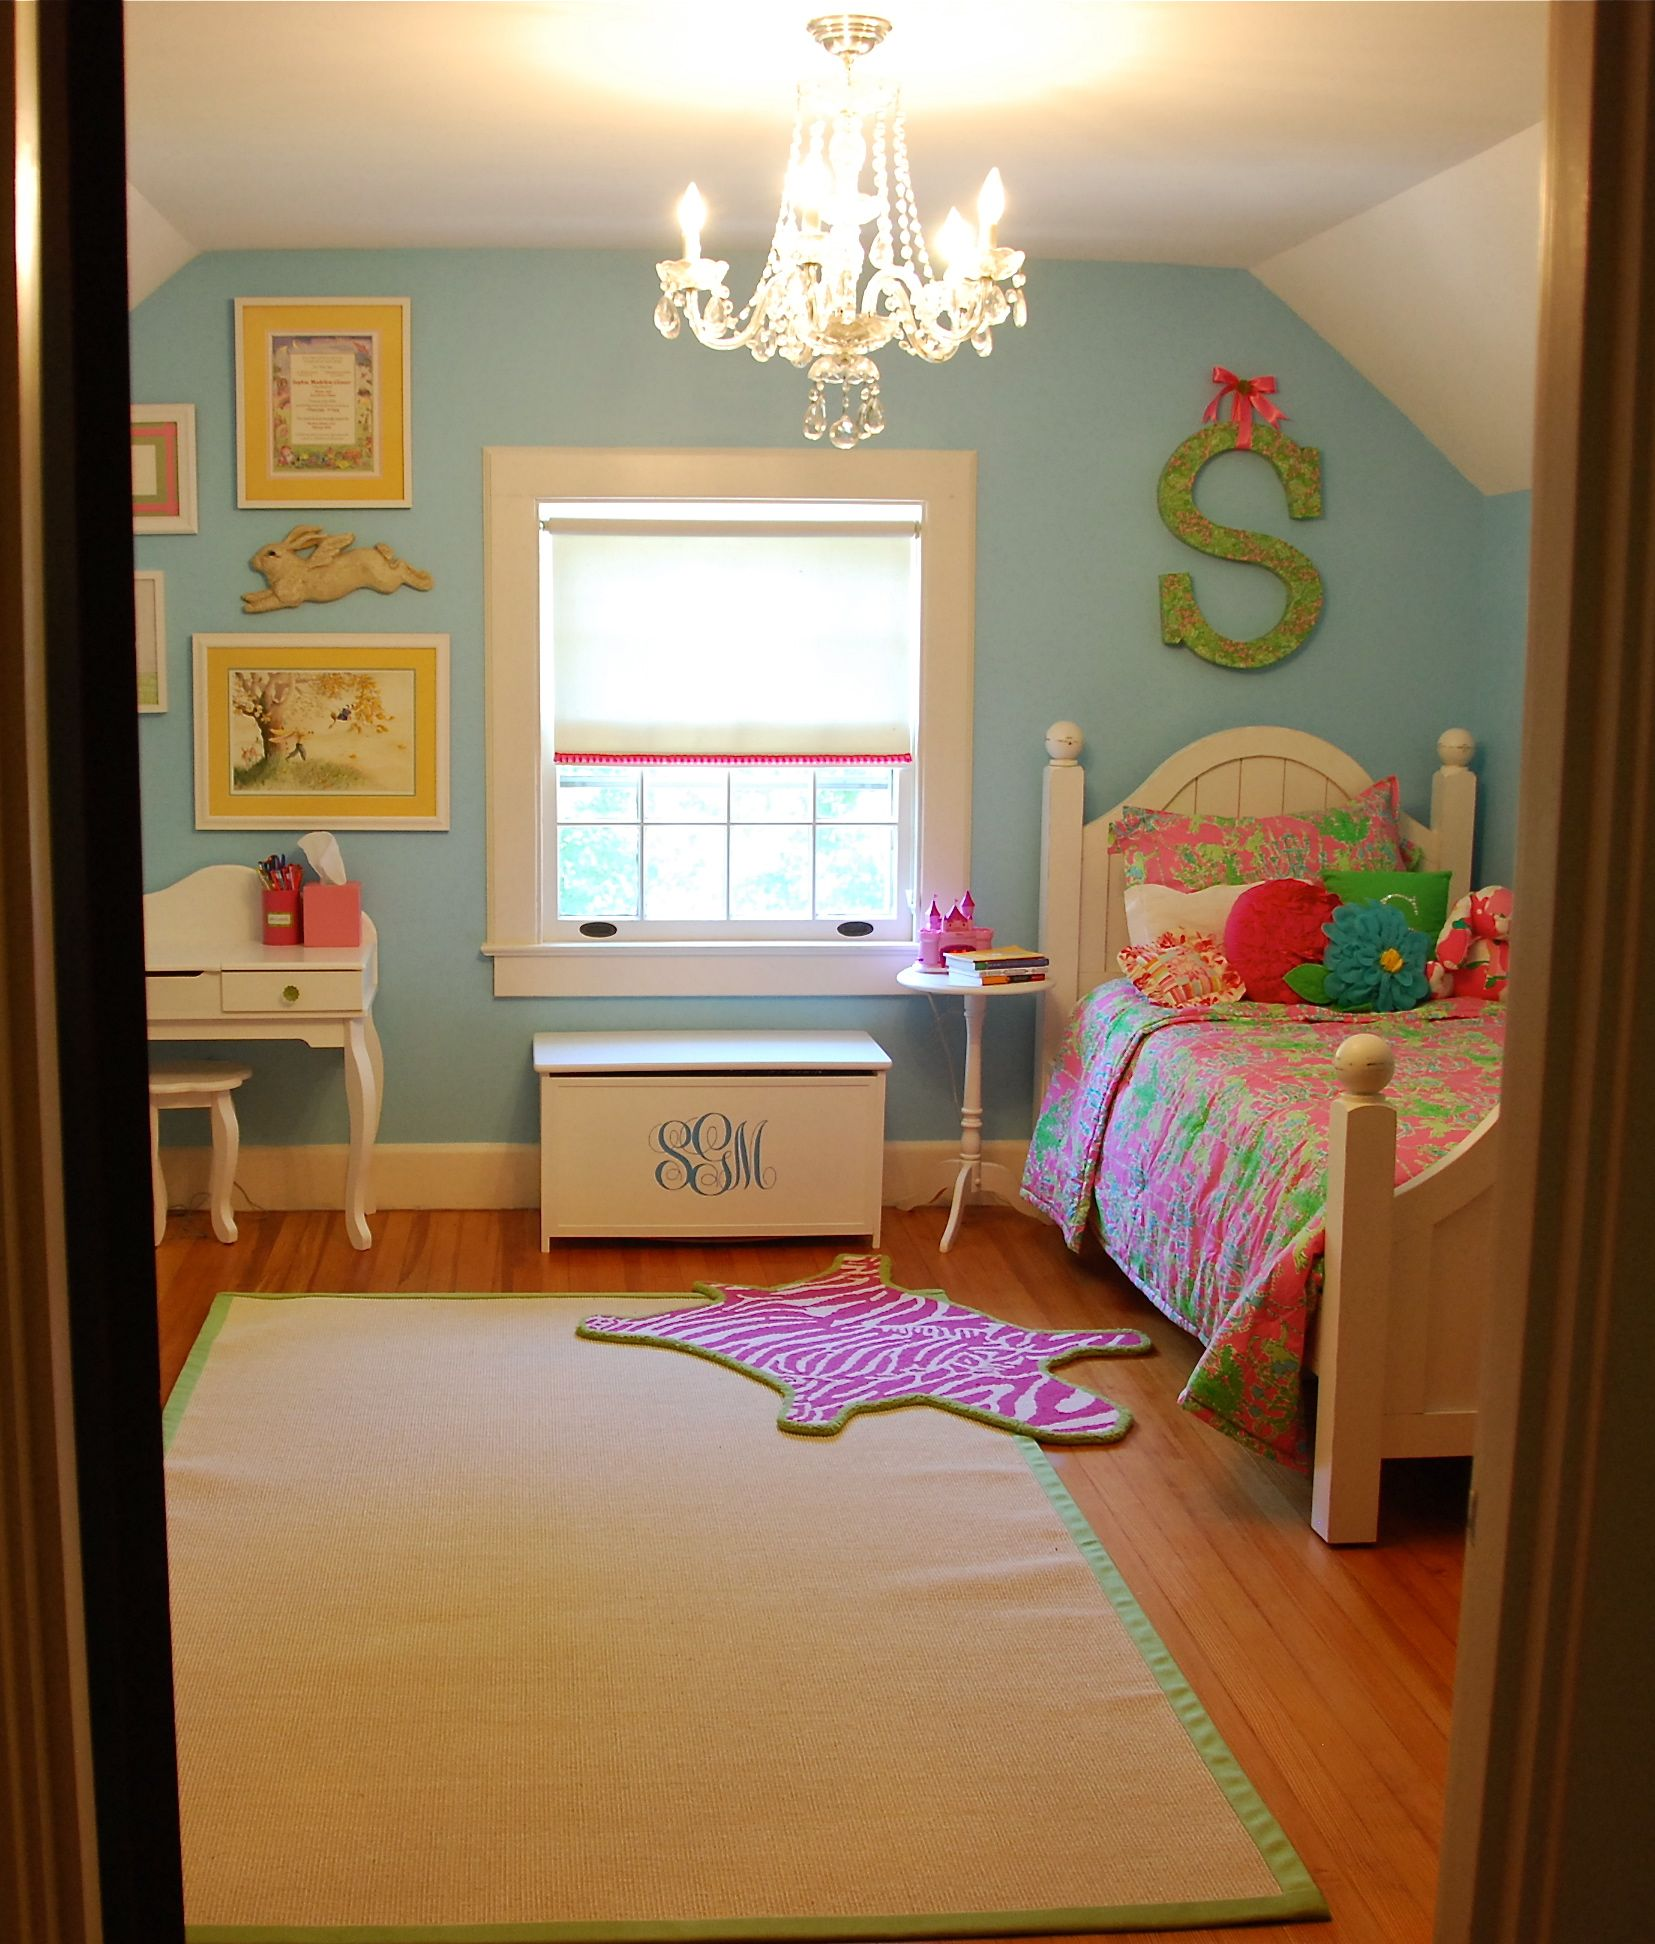 Room decorating before and after makeovers 11 year old girls room